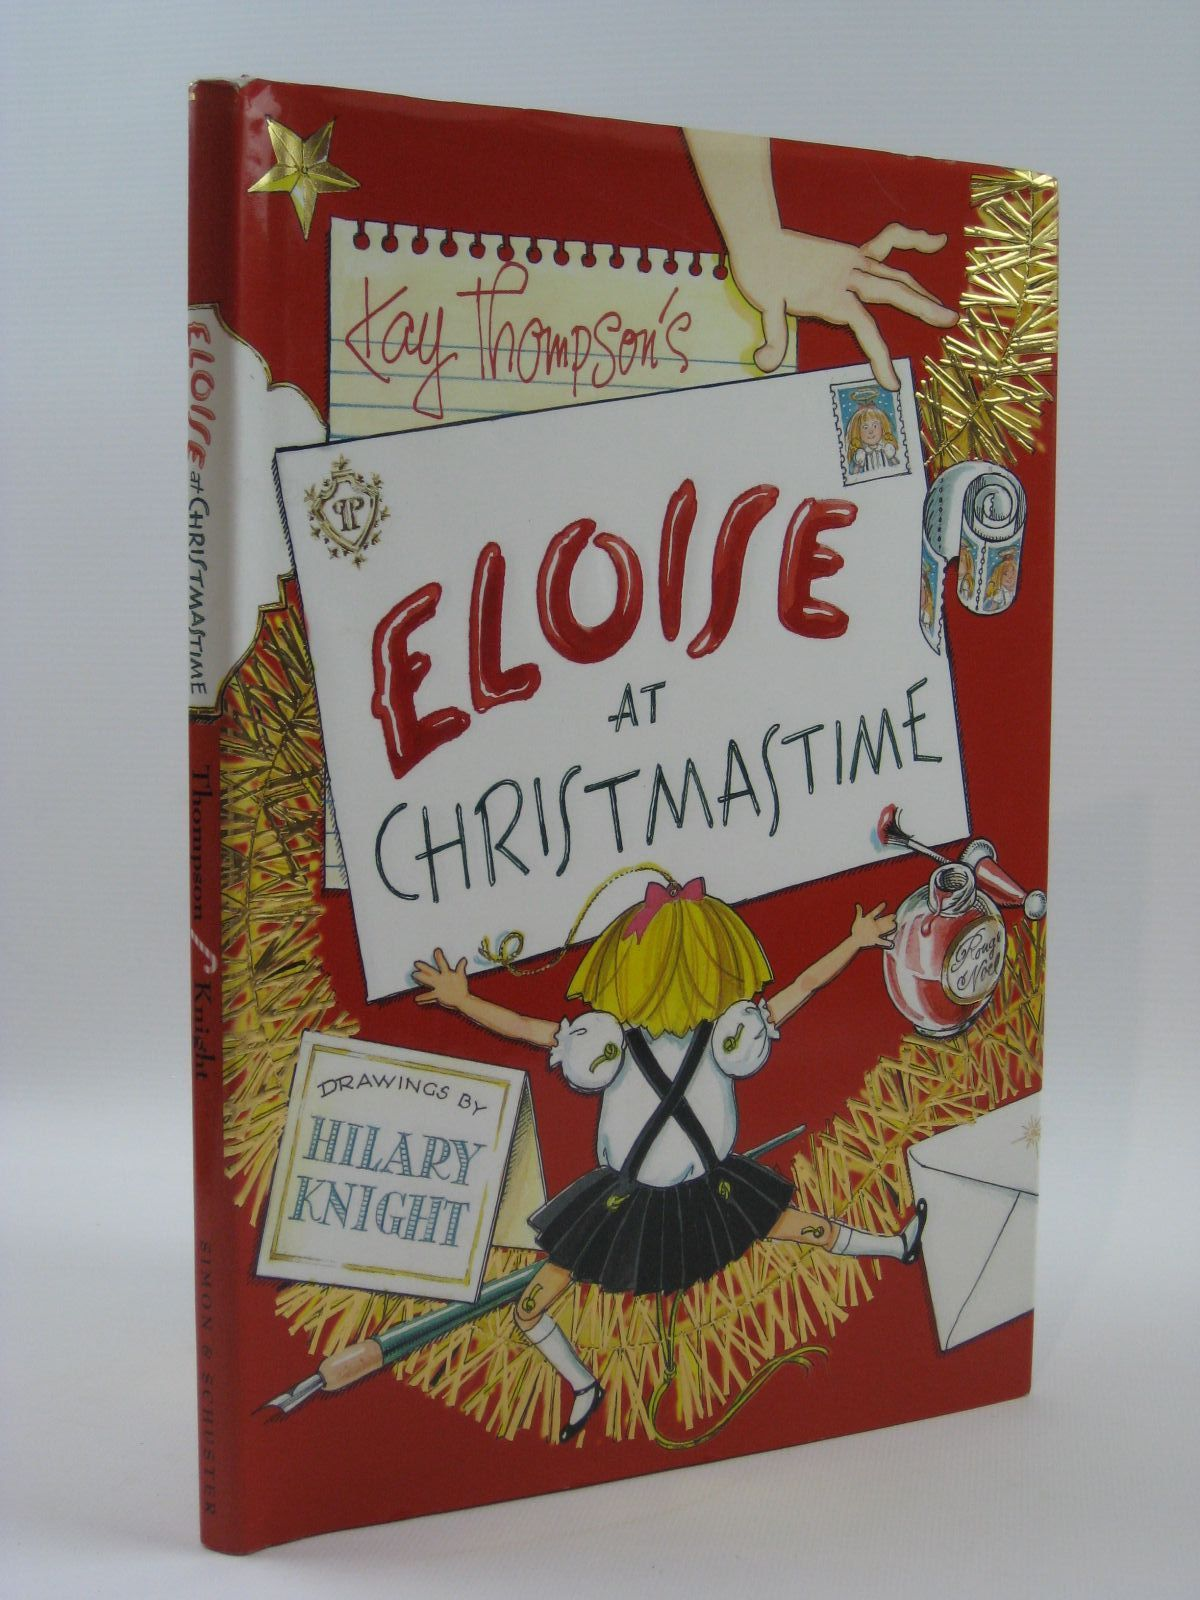 Photo of ELOISE AT CHRISTMAS written by Thompson, Kay illustrated by Knight, Hilary published by Simon & Schuster Books For Young Readers (STOCK CODE: 1407057)  for sale by Stella & Rose's Books